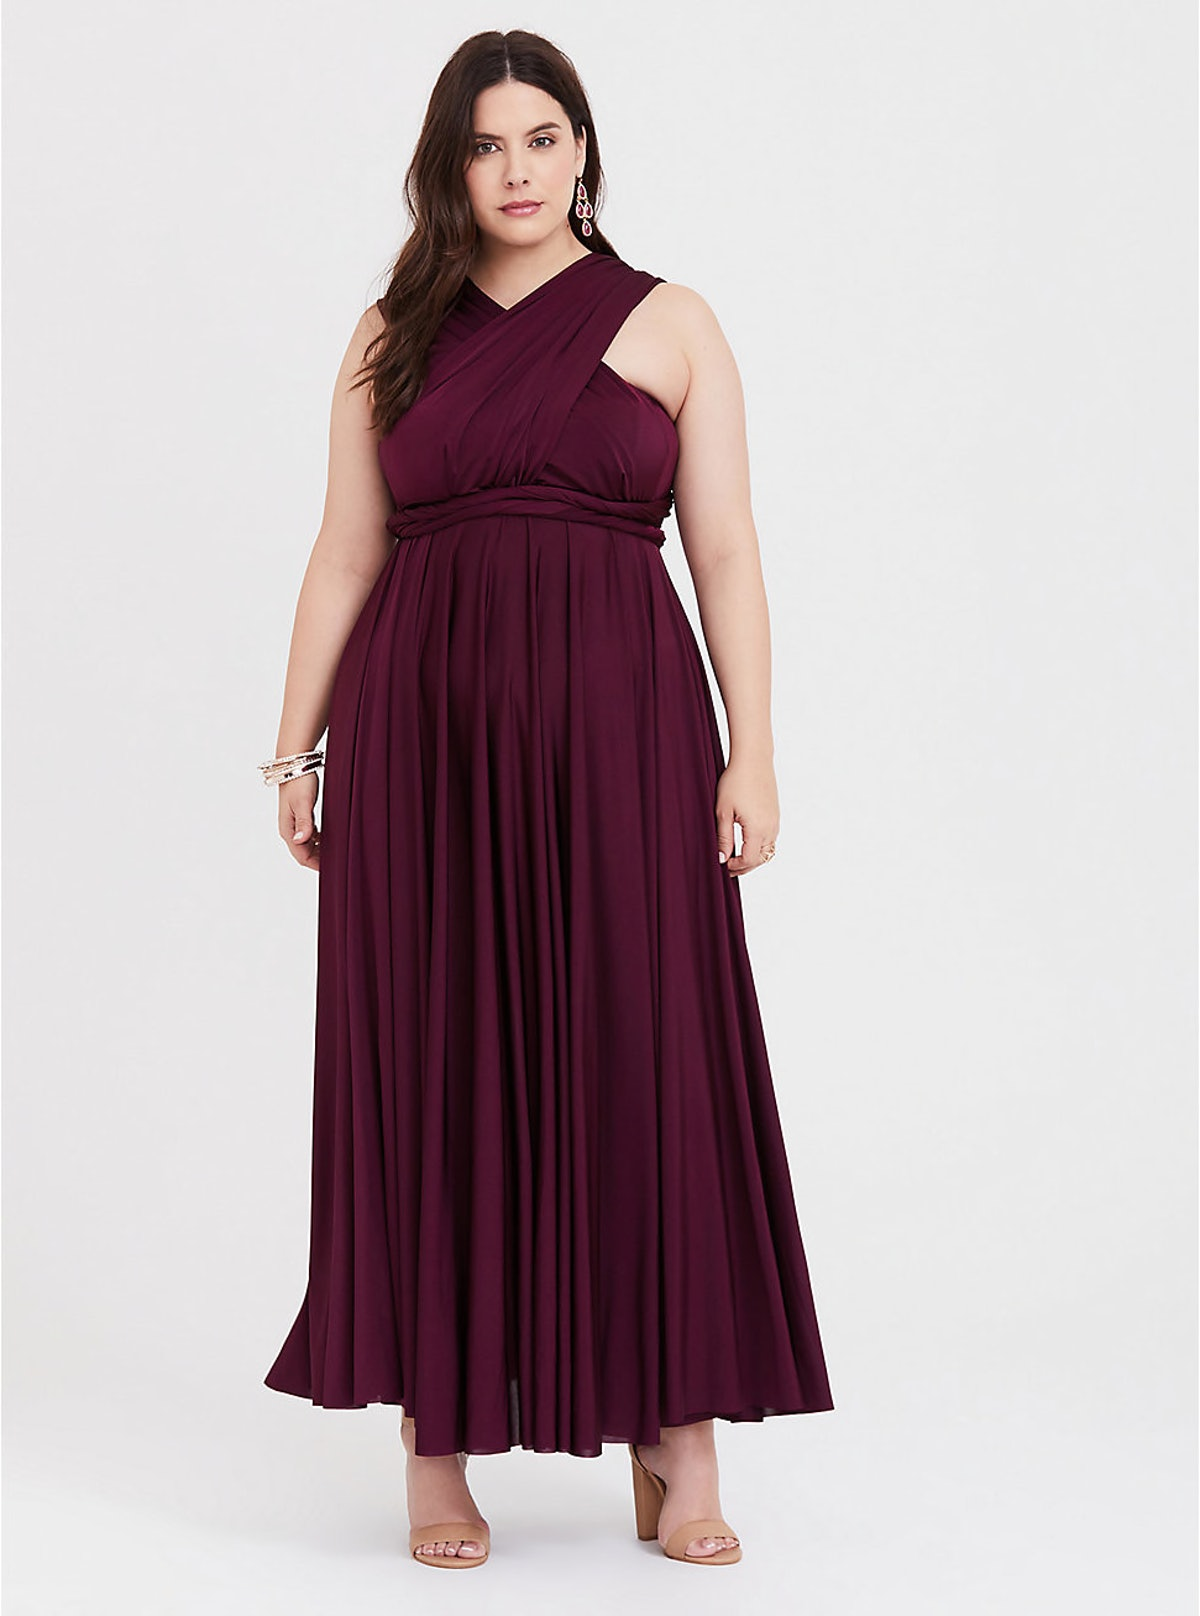 Special Occasion Burgundy Studio Knit Convertible Maxi Dress